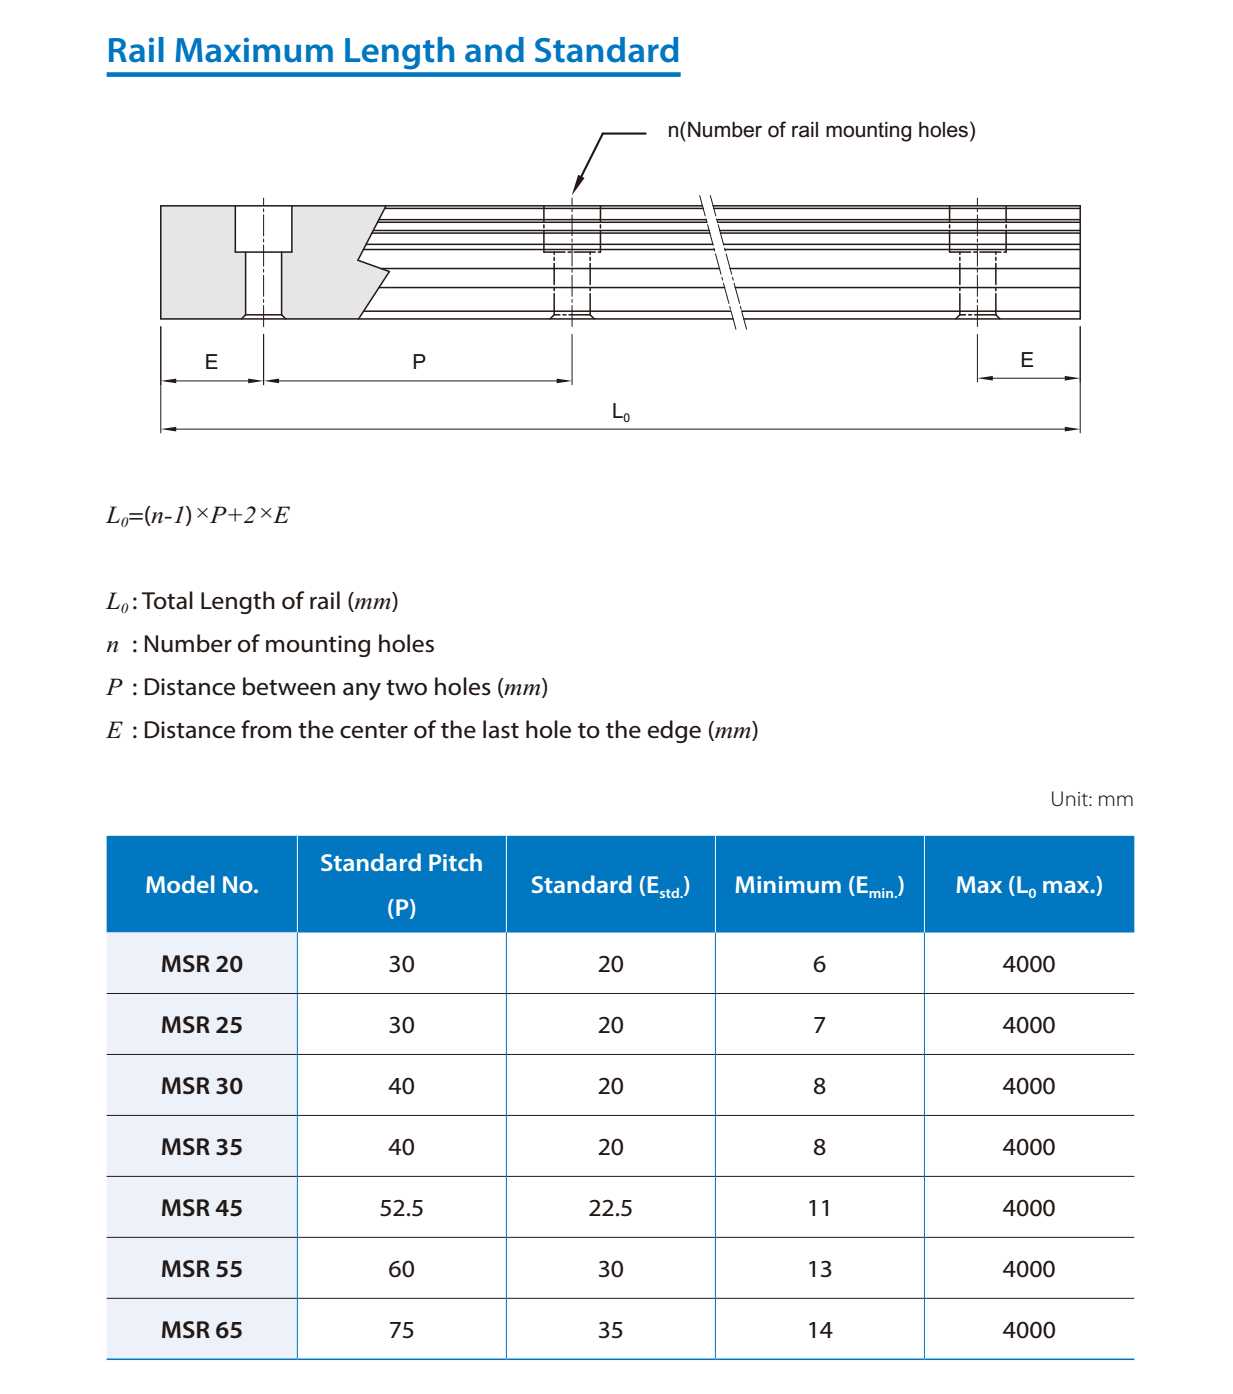 PMI Linear Guide MSR Series Full Roller Type Rail Maximum Length and Standard